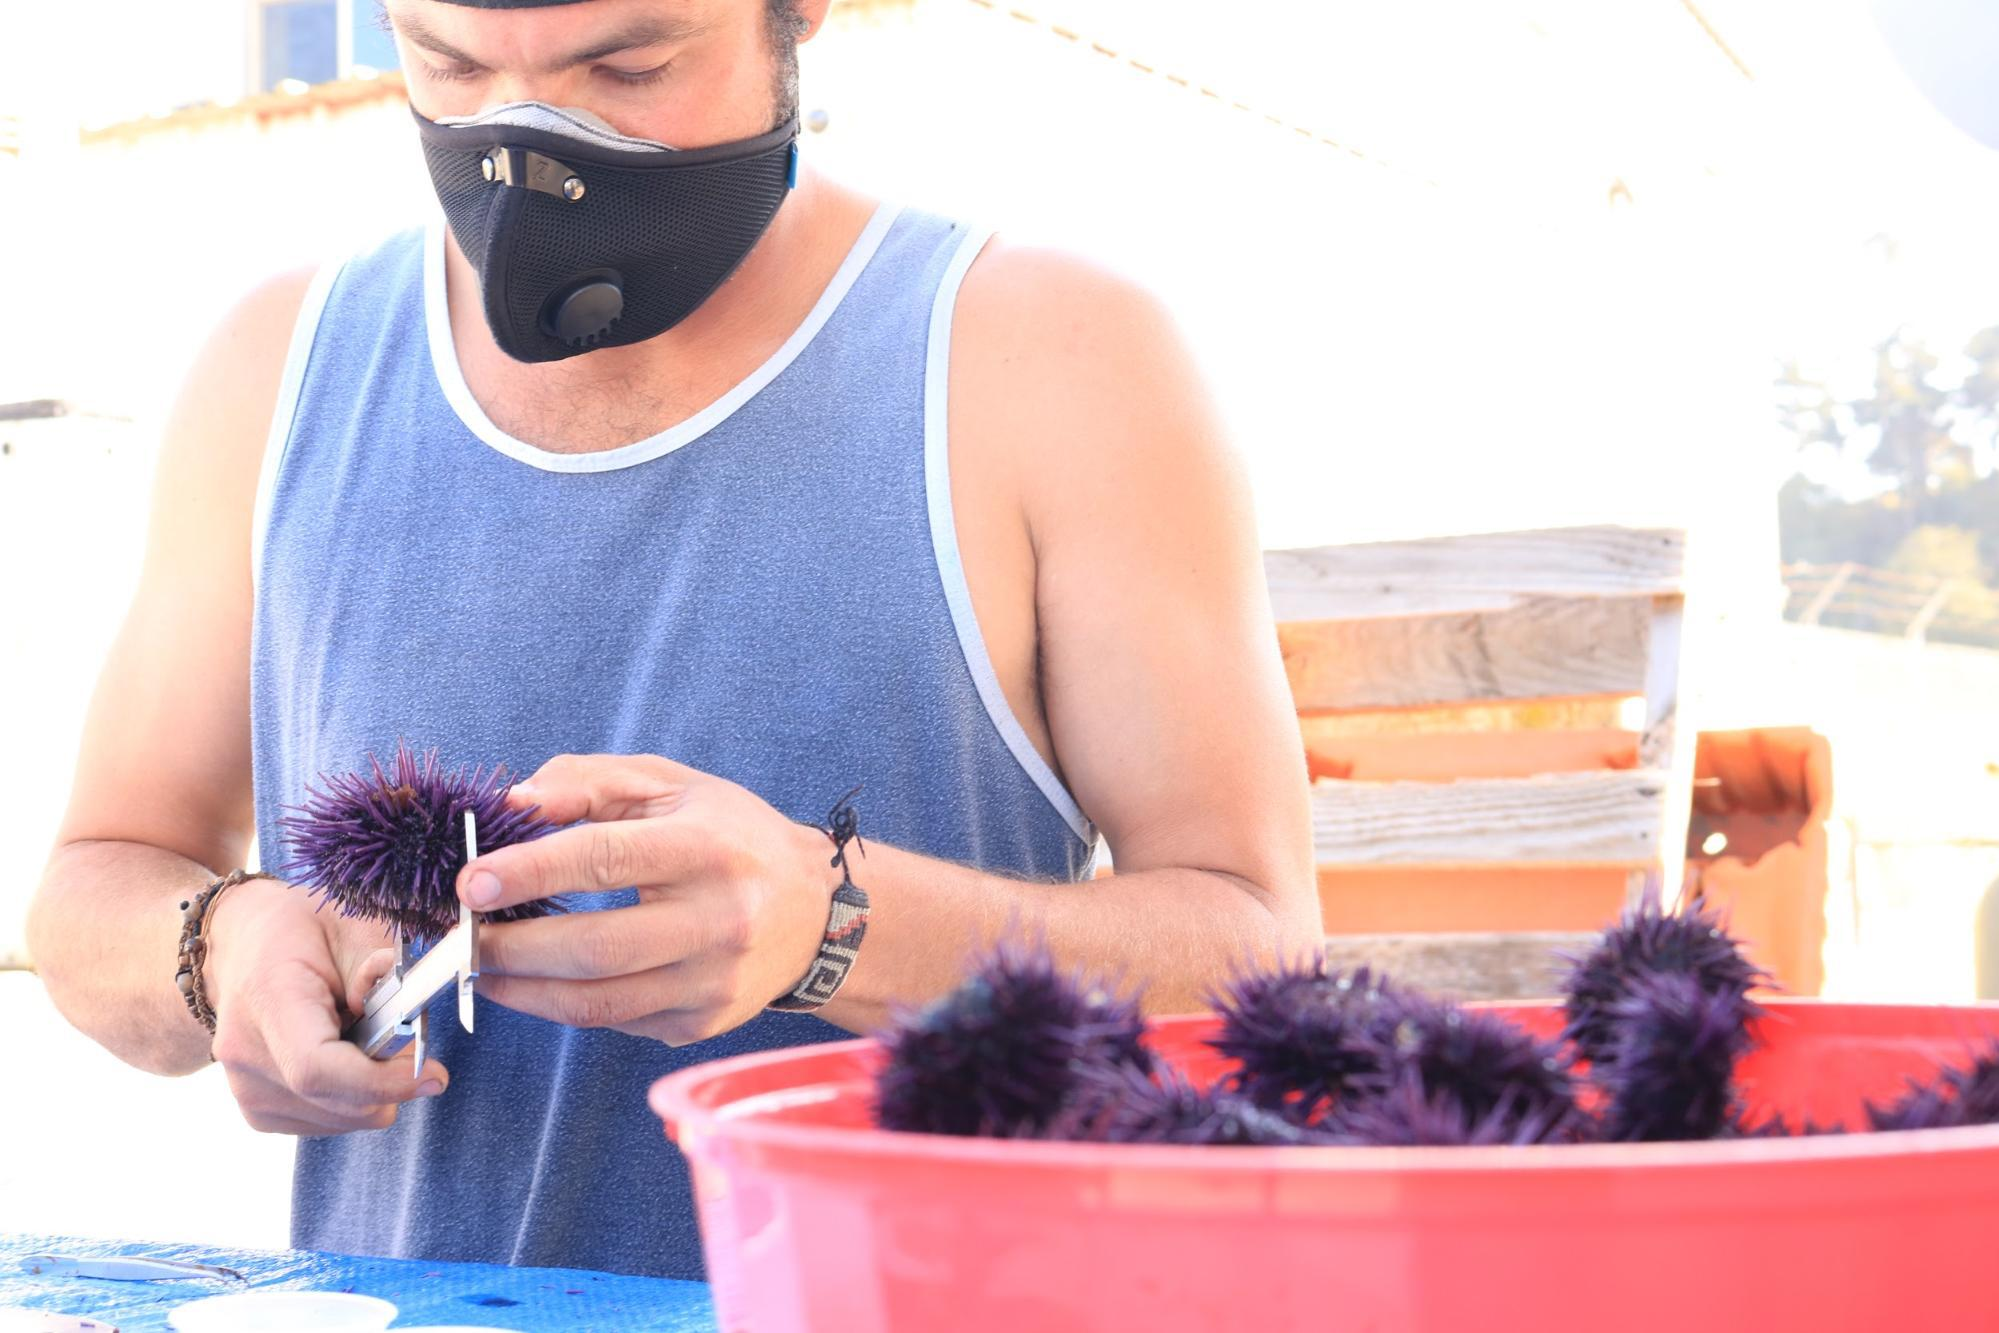 A man in a blue tank top and mask measures a purple urchin with a metal tool. In front of him, there is a large, red, plastic bucket of purple urchins.